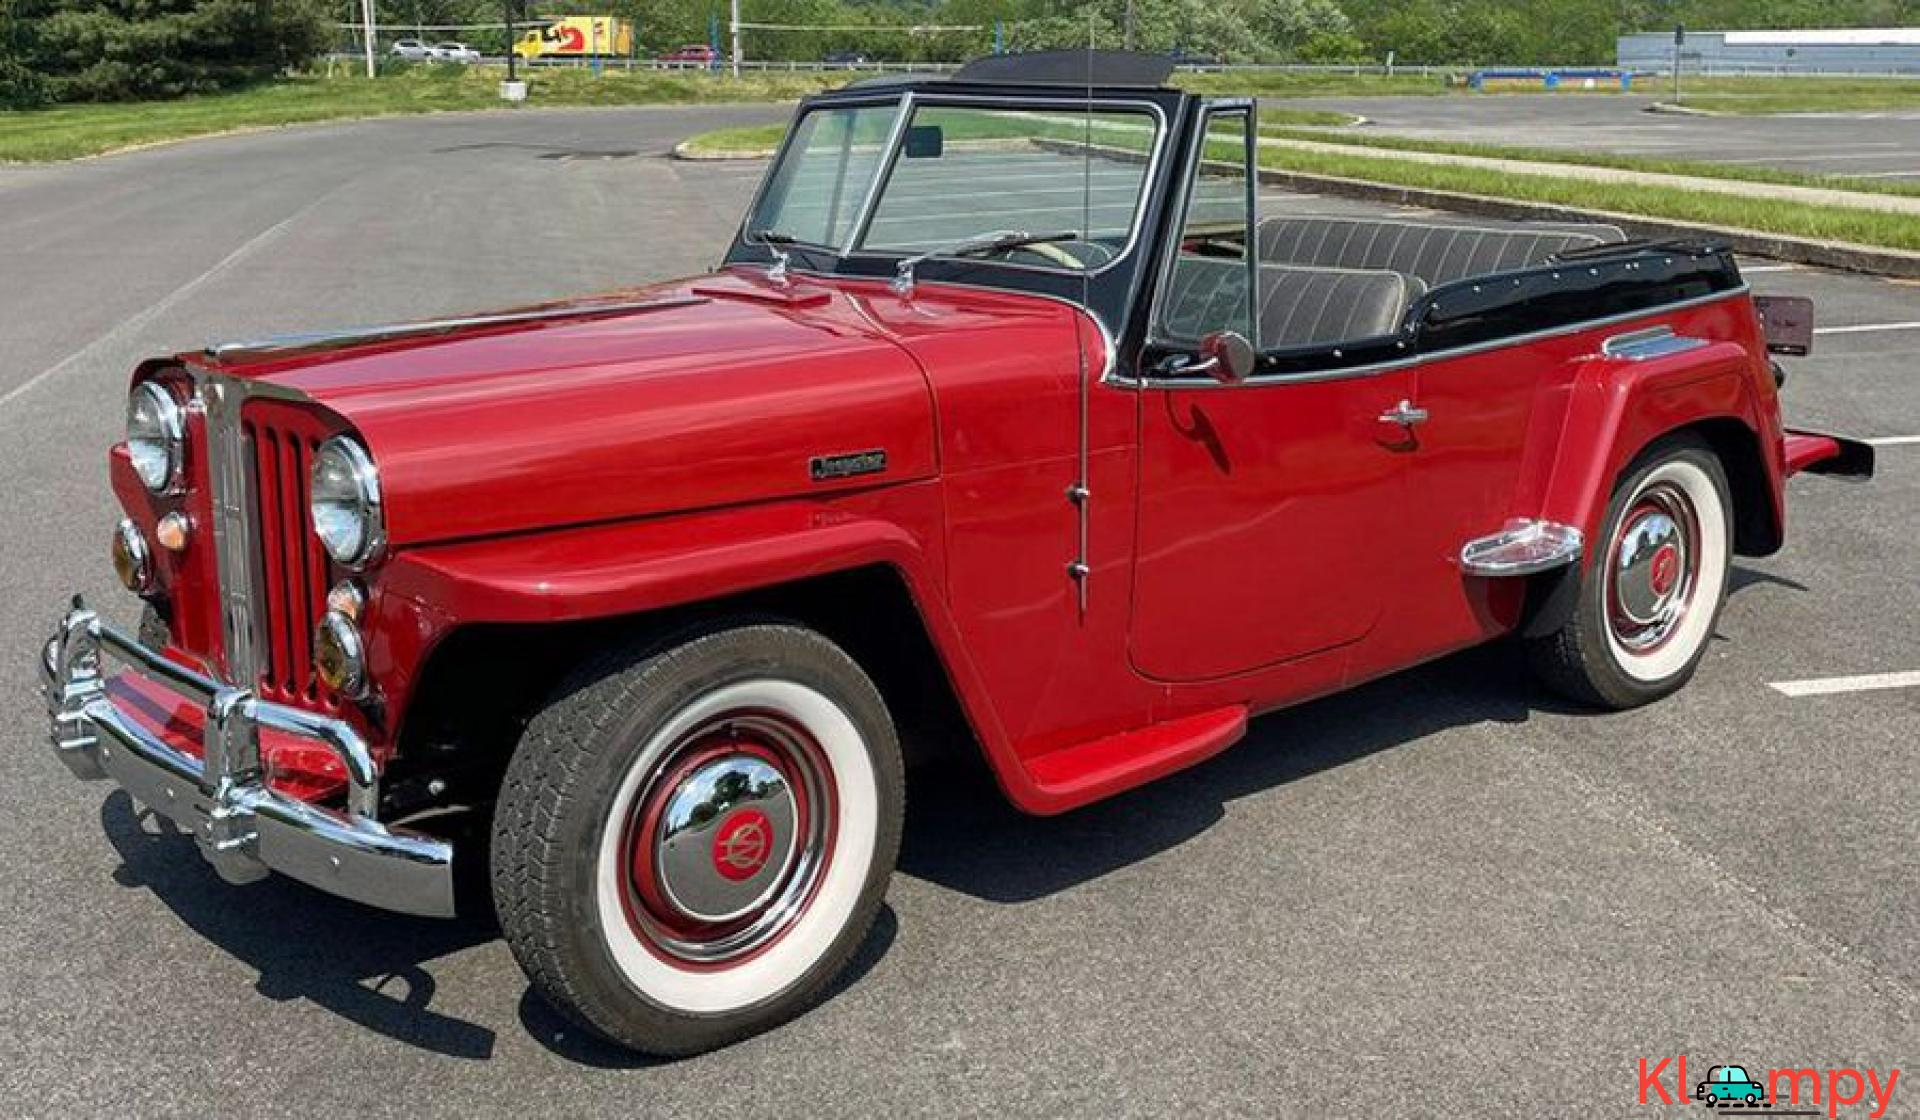 1948 Willys Jeepster Convertible GM 2.5 liter 4 cyl - 3/16